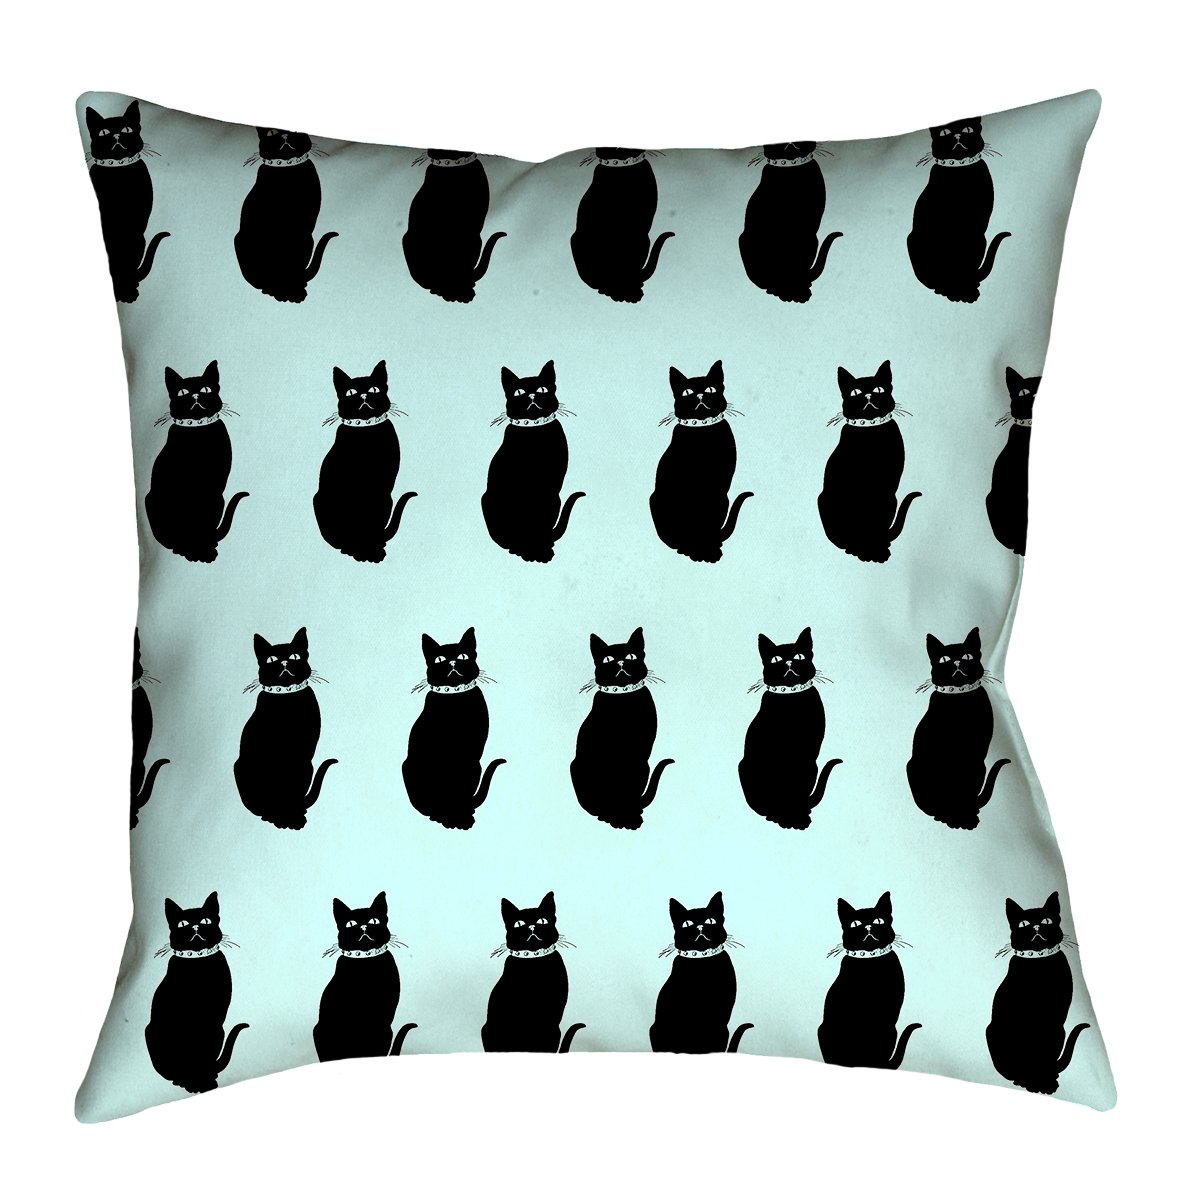 ArtVerse Katelyn Smith 28 x 28 Floor Double Sided Print with Concealed Zipper /& Insert Blue Cat Pattern Pillow SMI131F2828L